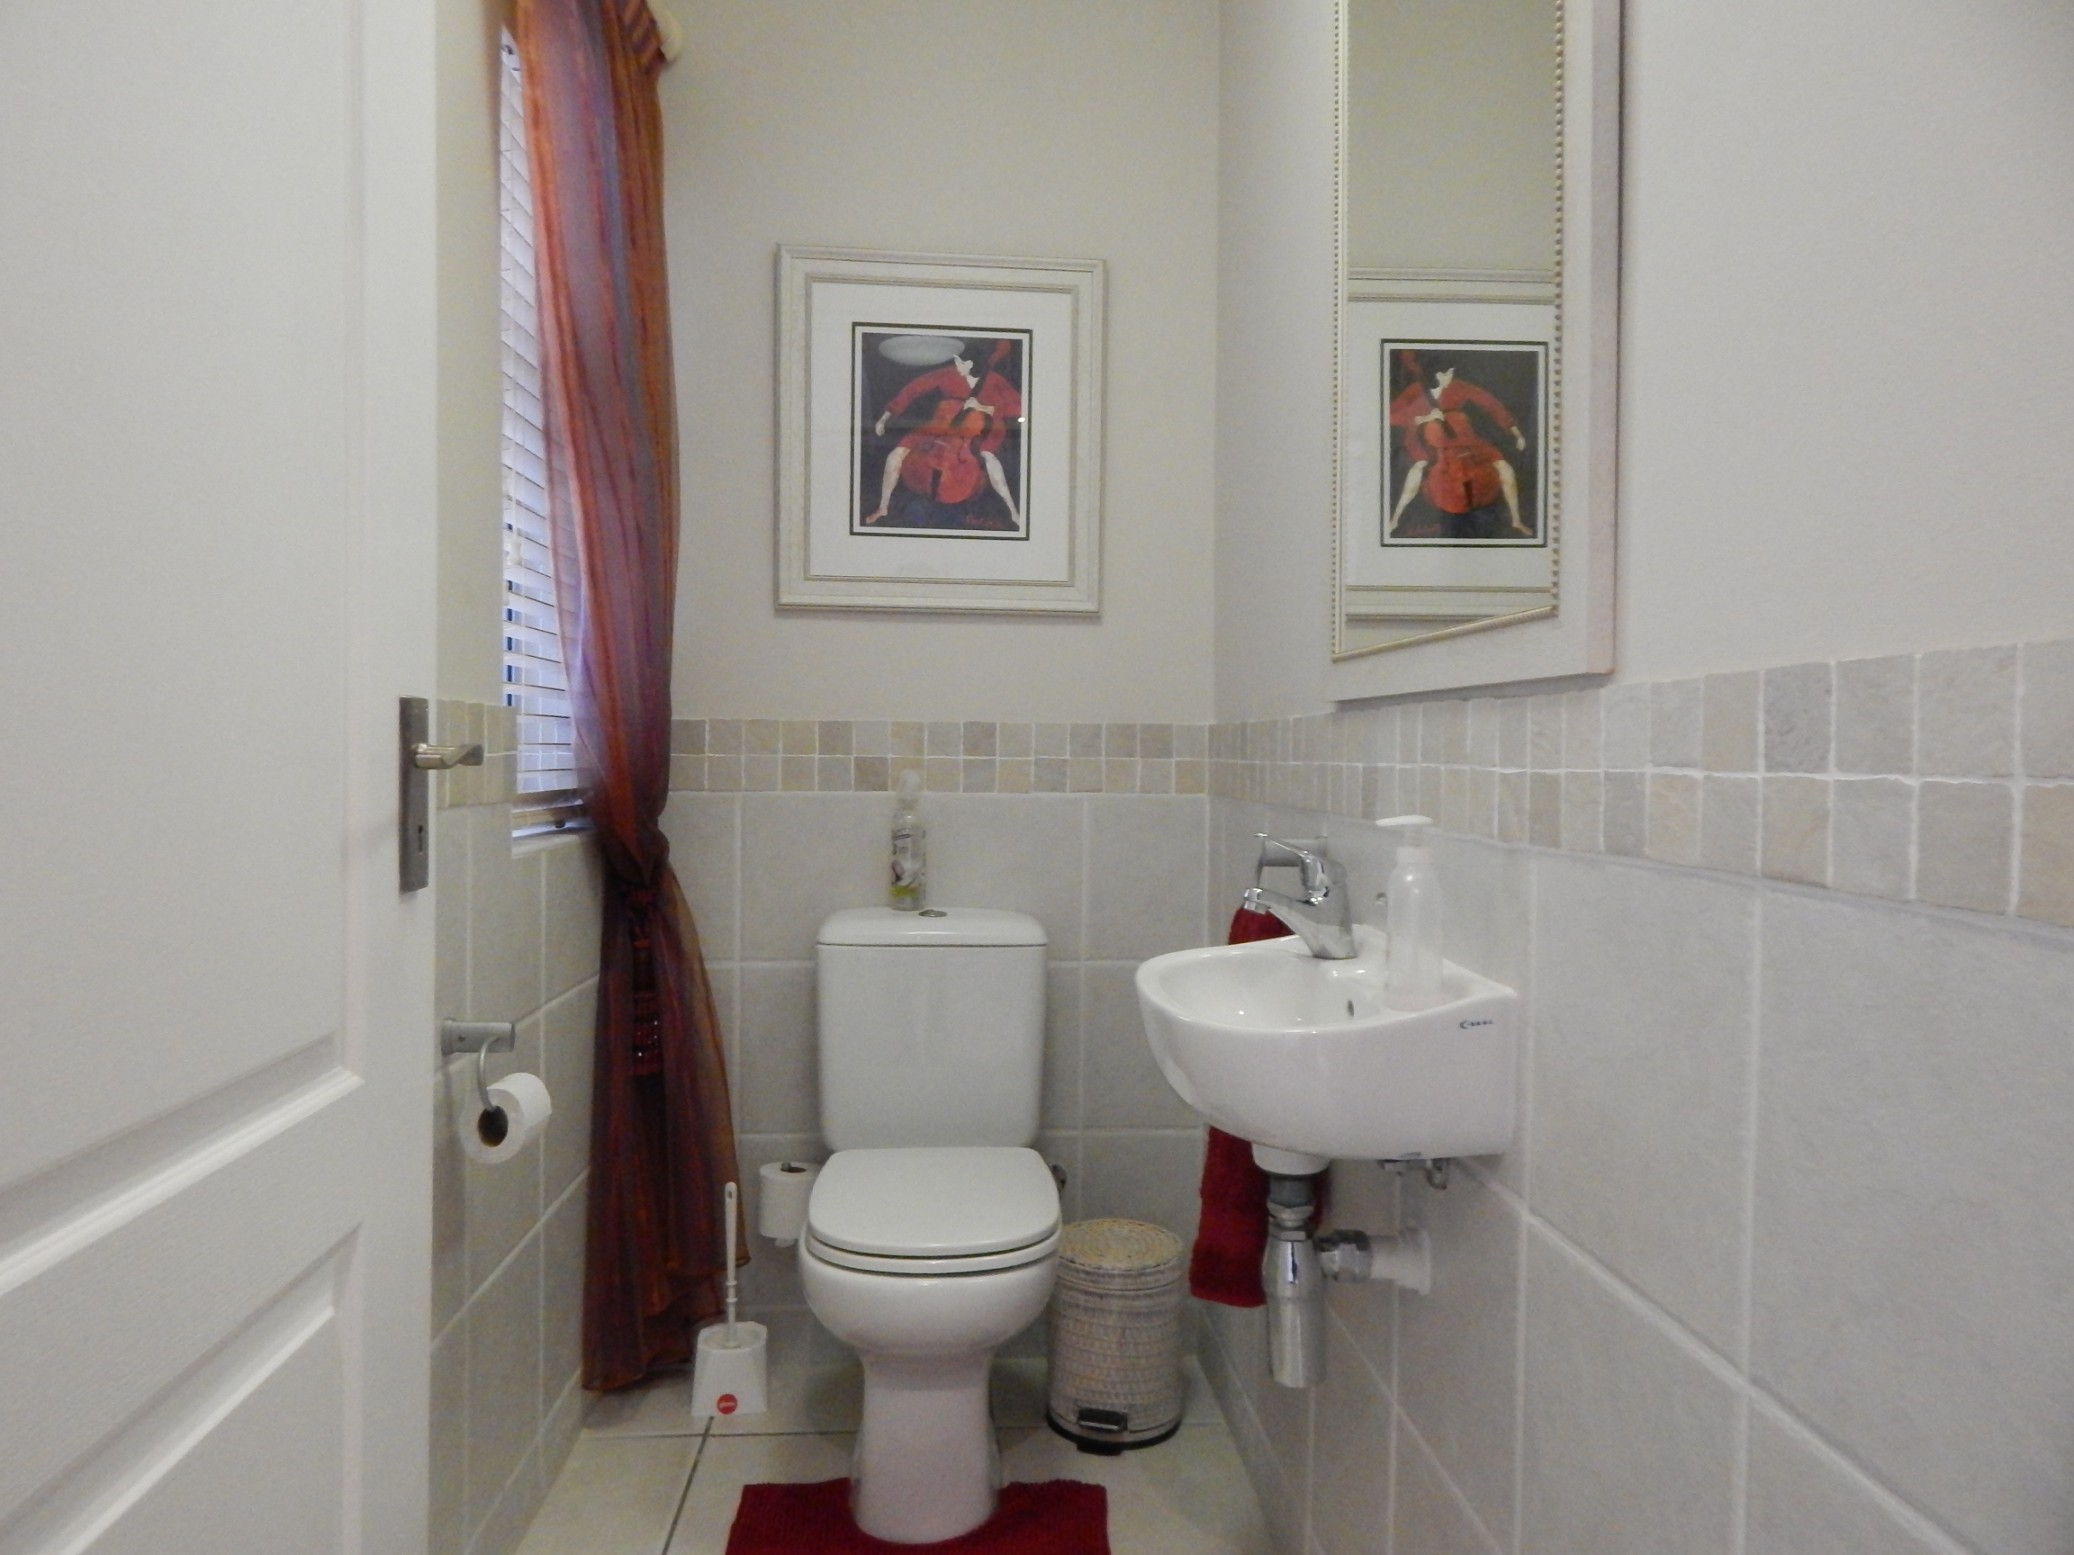 3 Bedroom Apartment for sale in Diaz Beach ENT0069020 : photo#31